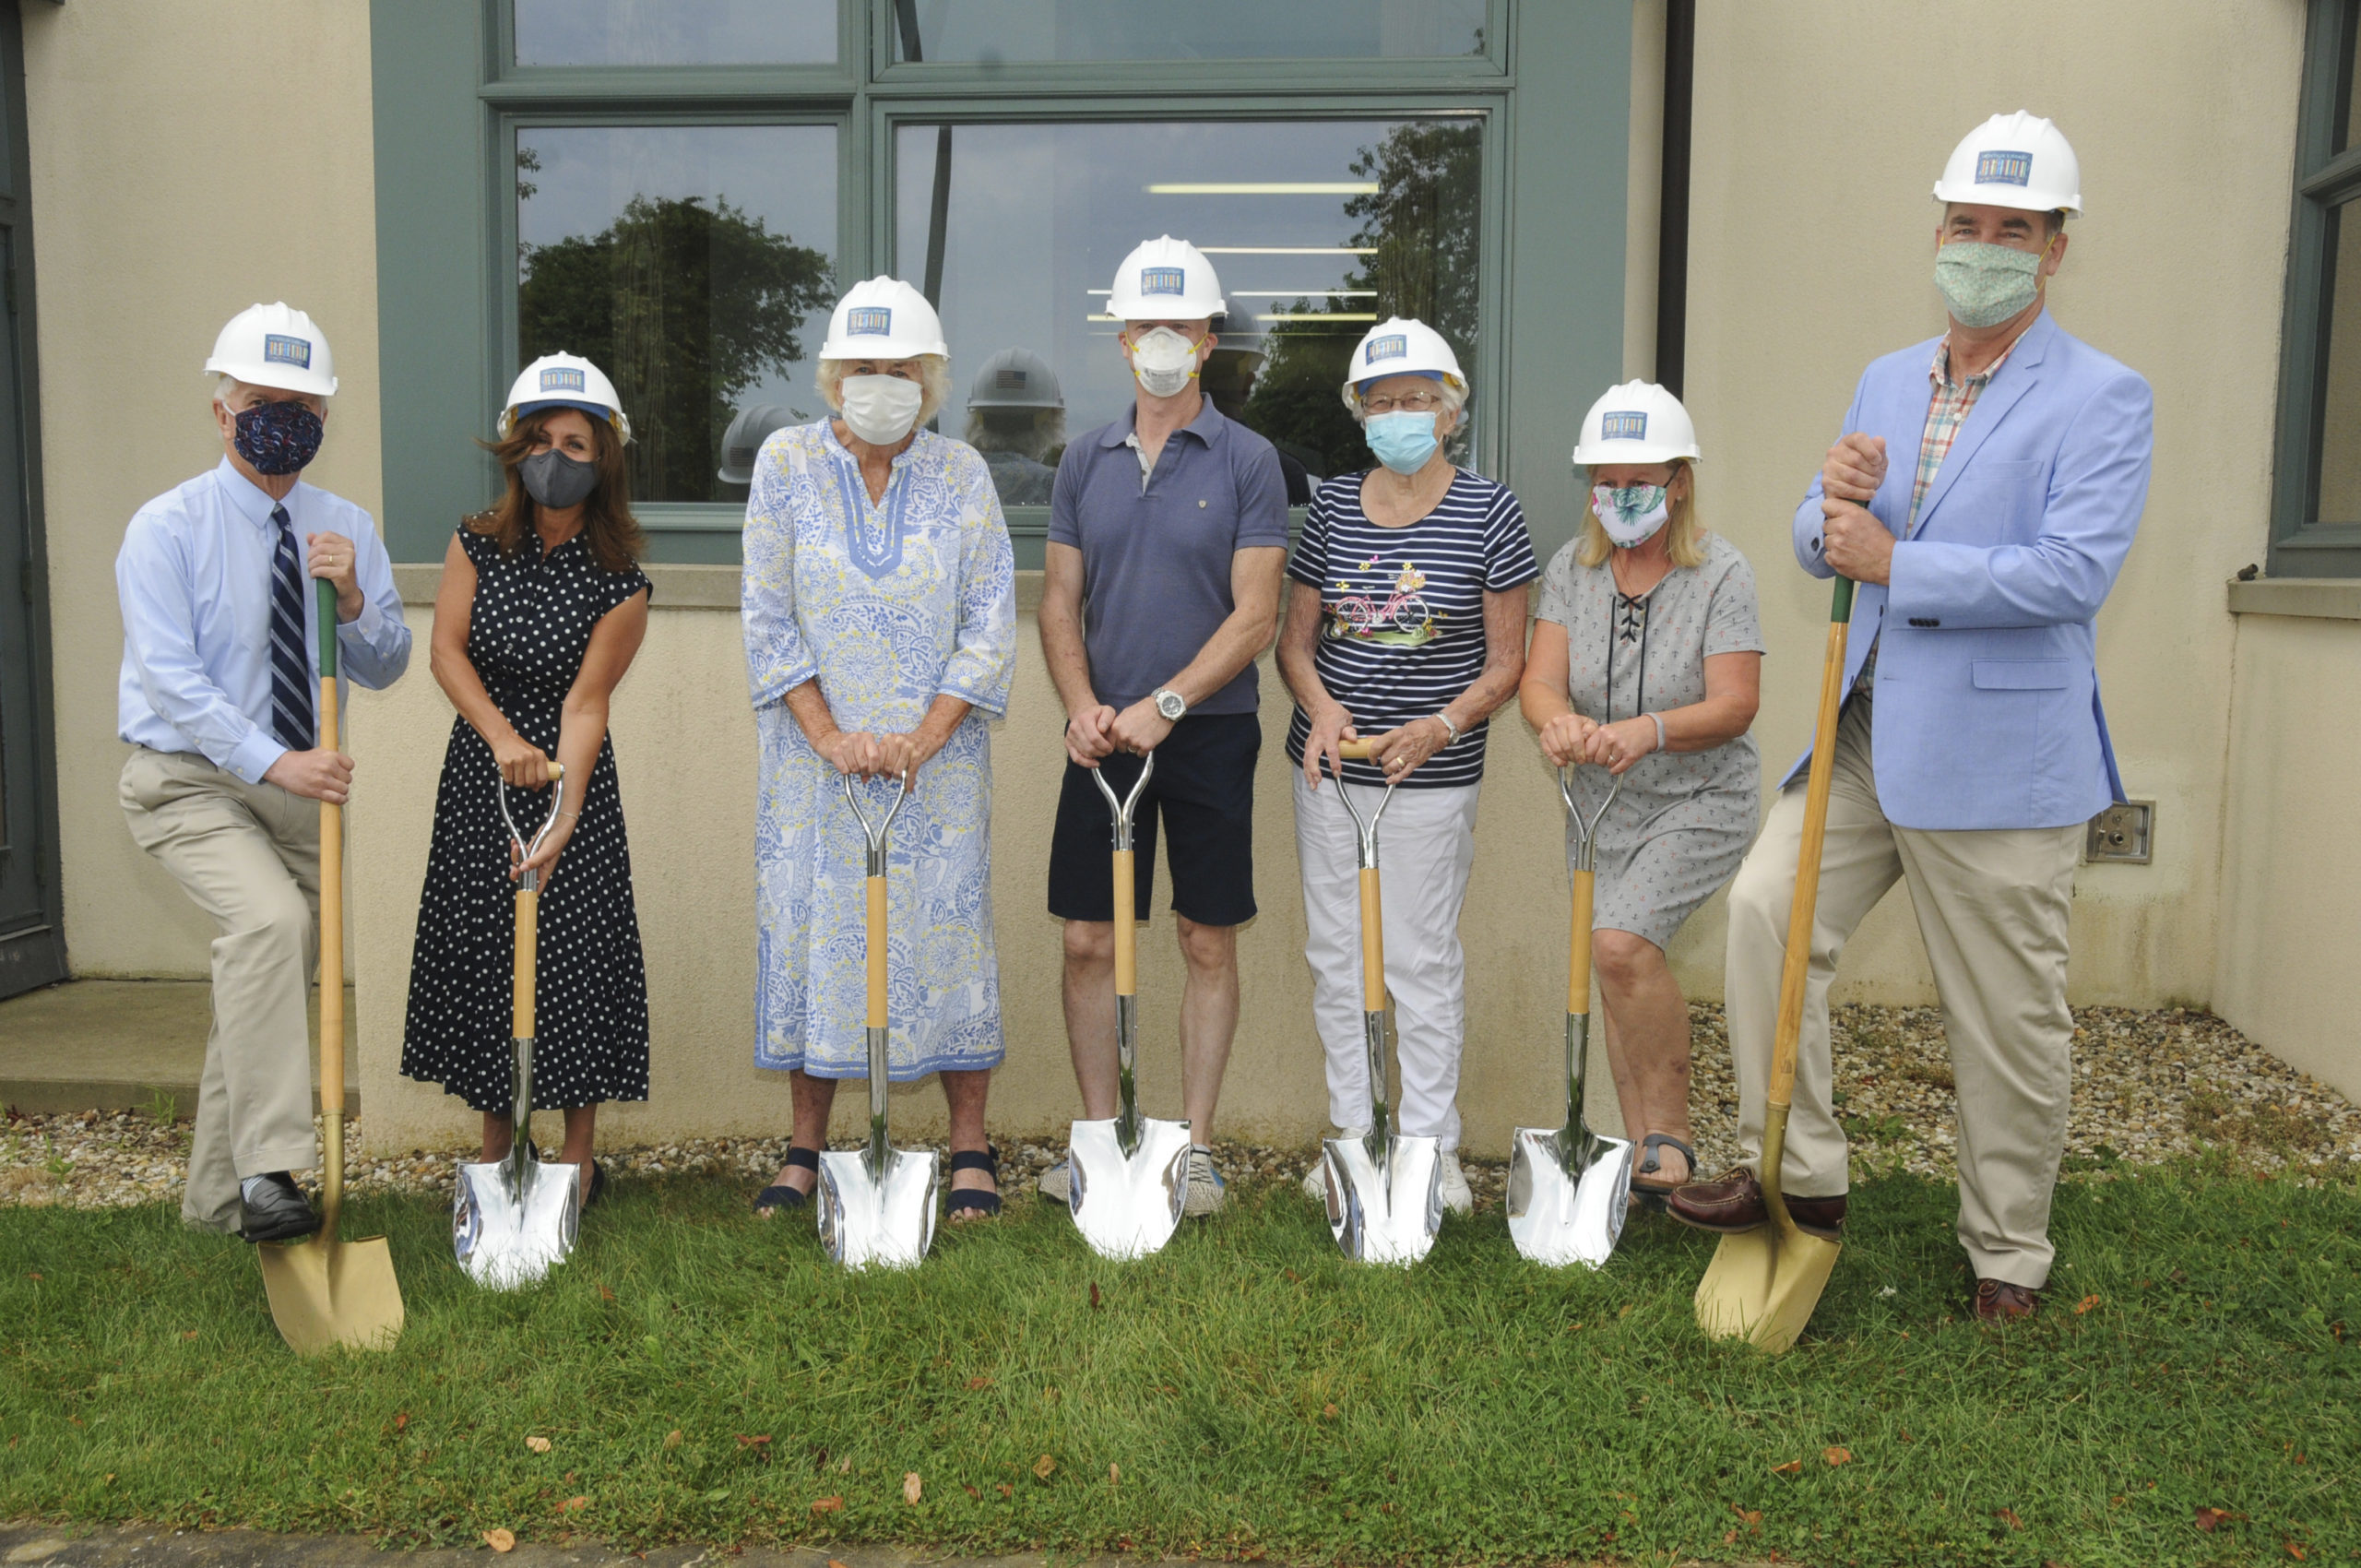 State Assemblyman Fred W. Thiele Jr., Montauk Library Director Denise DiPaolo, Library Board President Joan Lycke, Library Trustee Carter Tyler, Trustee Lynda Bostrom, Trustee Marilyn Levine and East Hampton Town Supervisor Peter Van Scoyoc at the Montauk Library expansion and renovation building project groundbreaking ceremony on Friday, July 24. RICHARD LEWIN